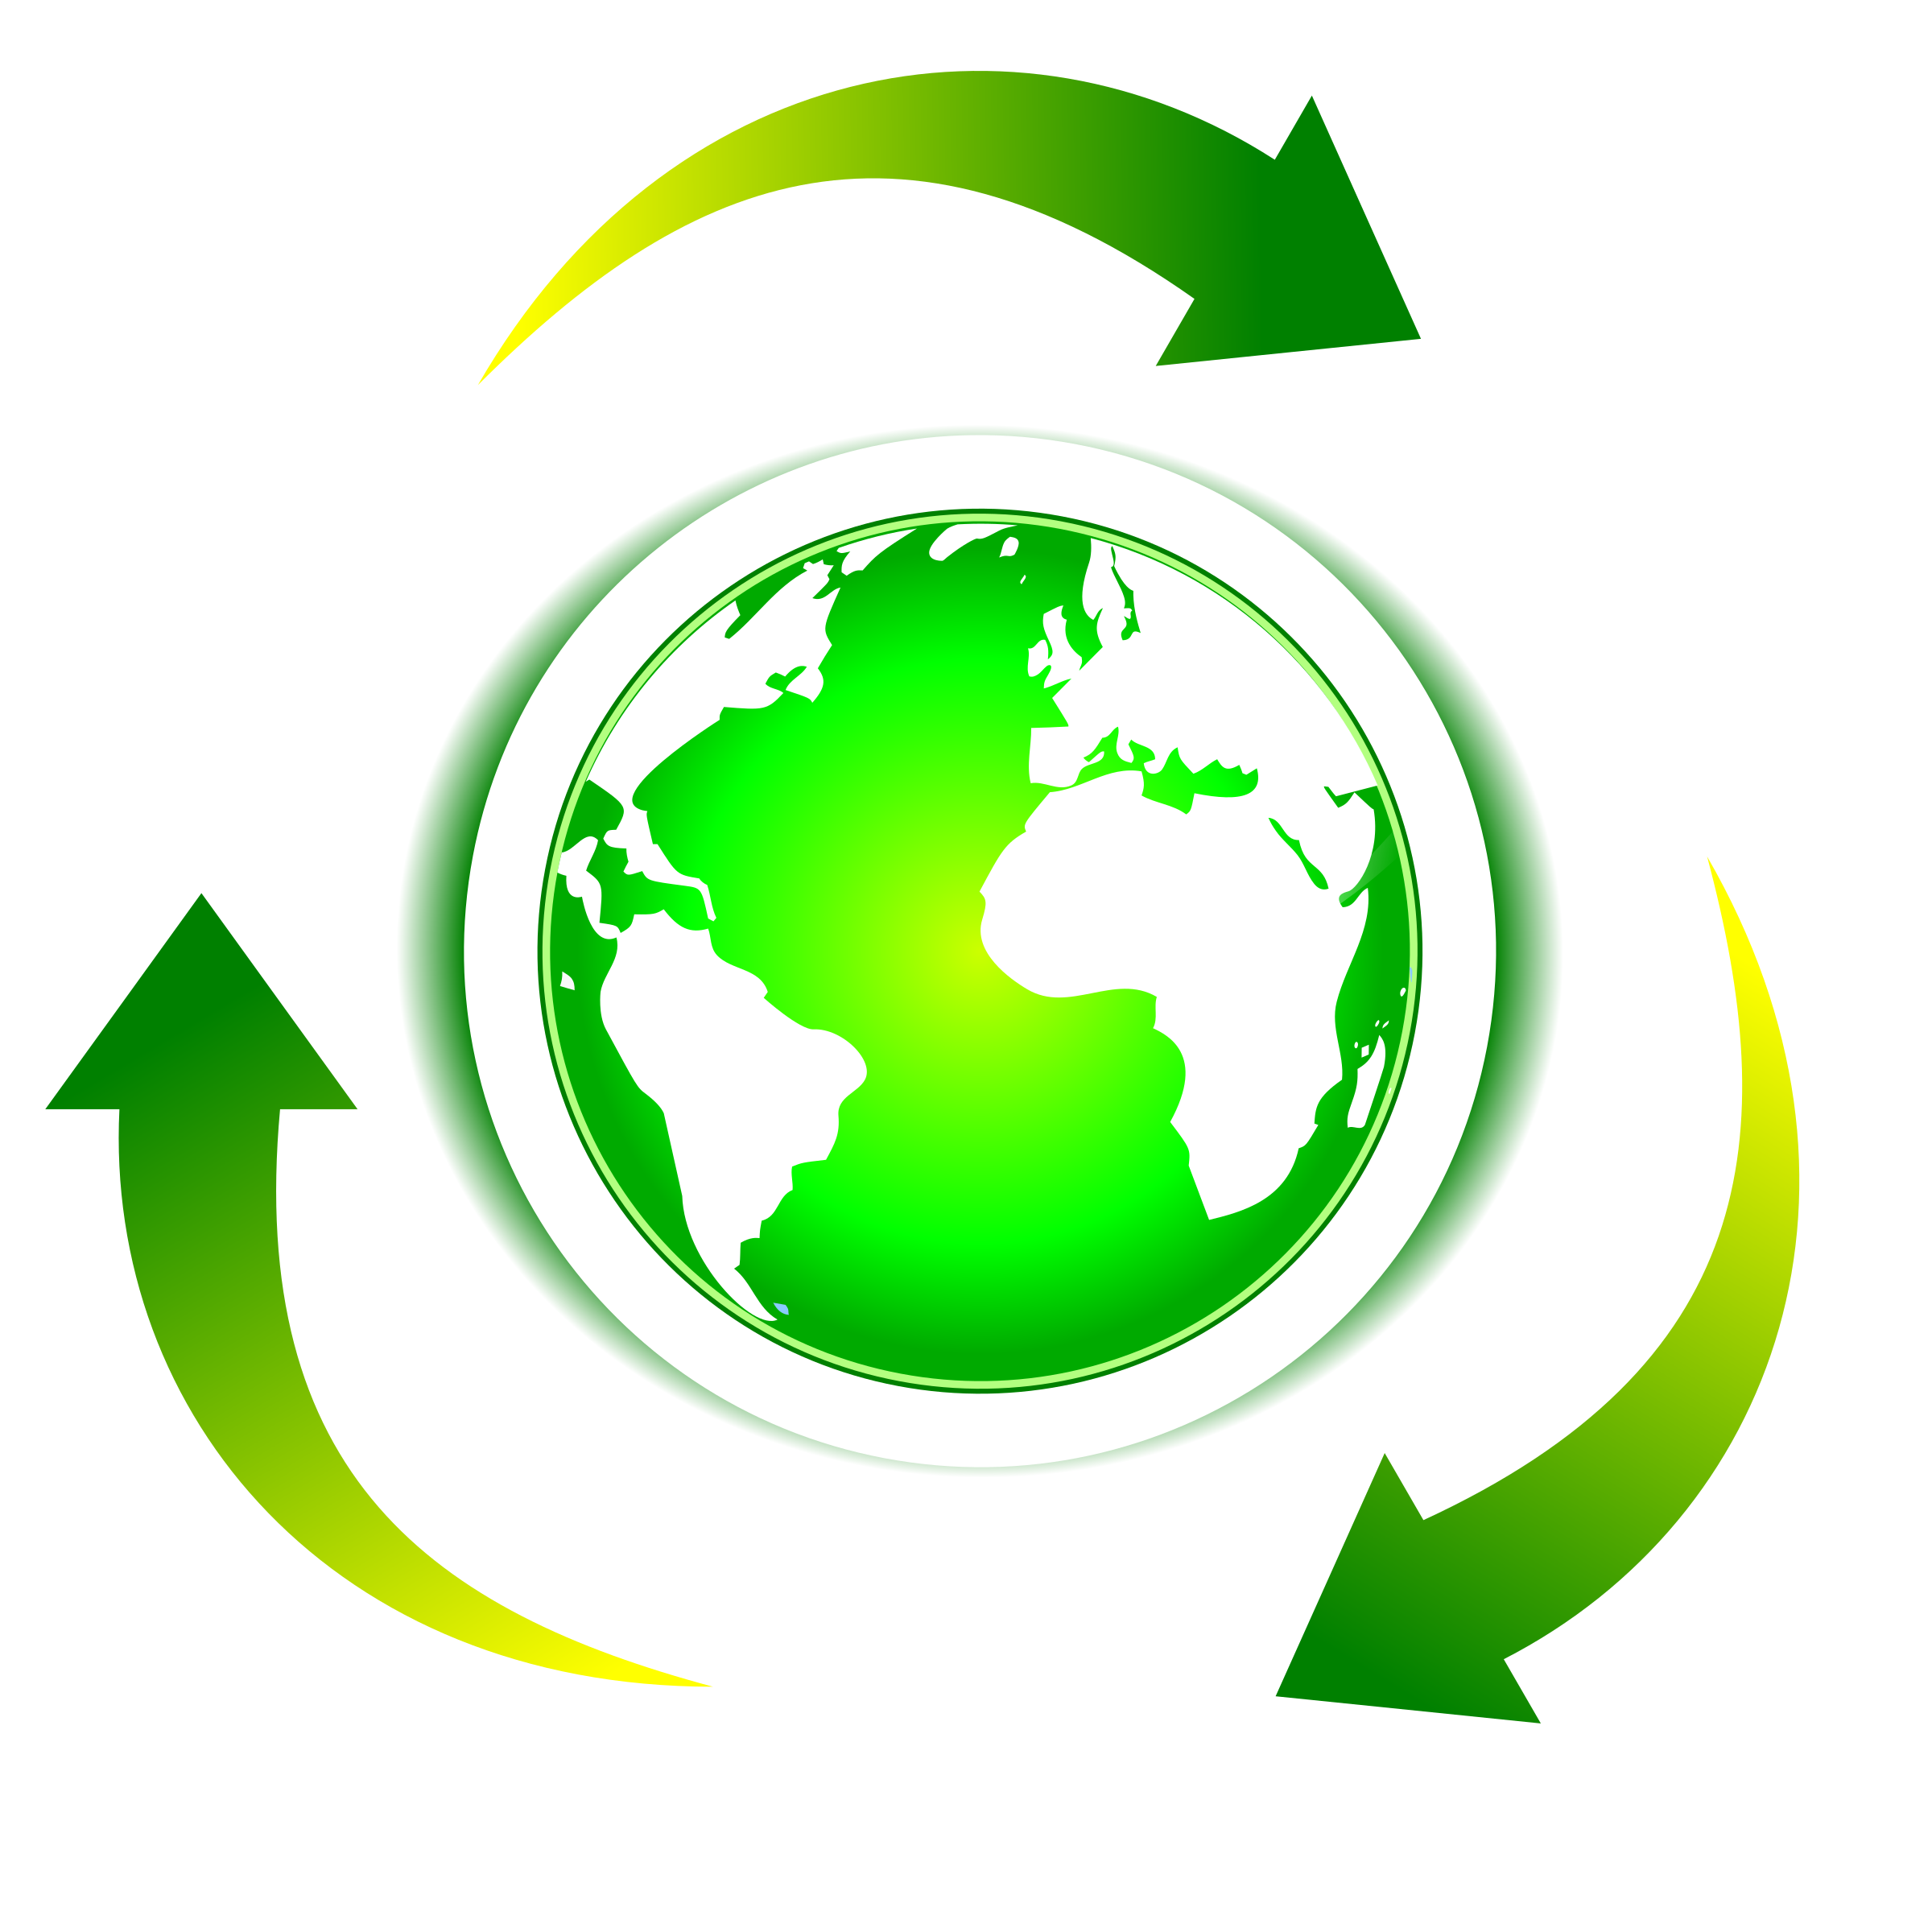 Clipart earth recycling. Ecology recycle big image